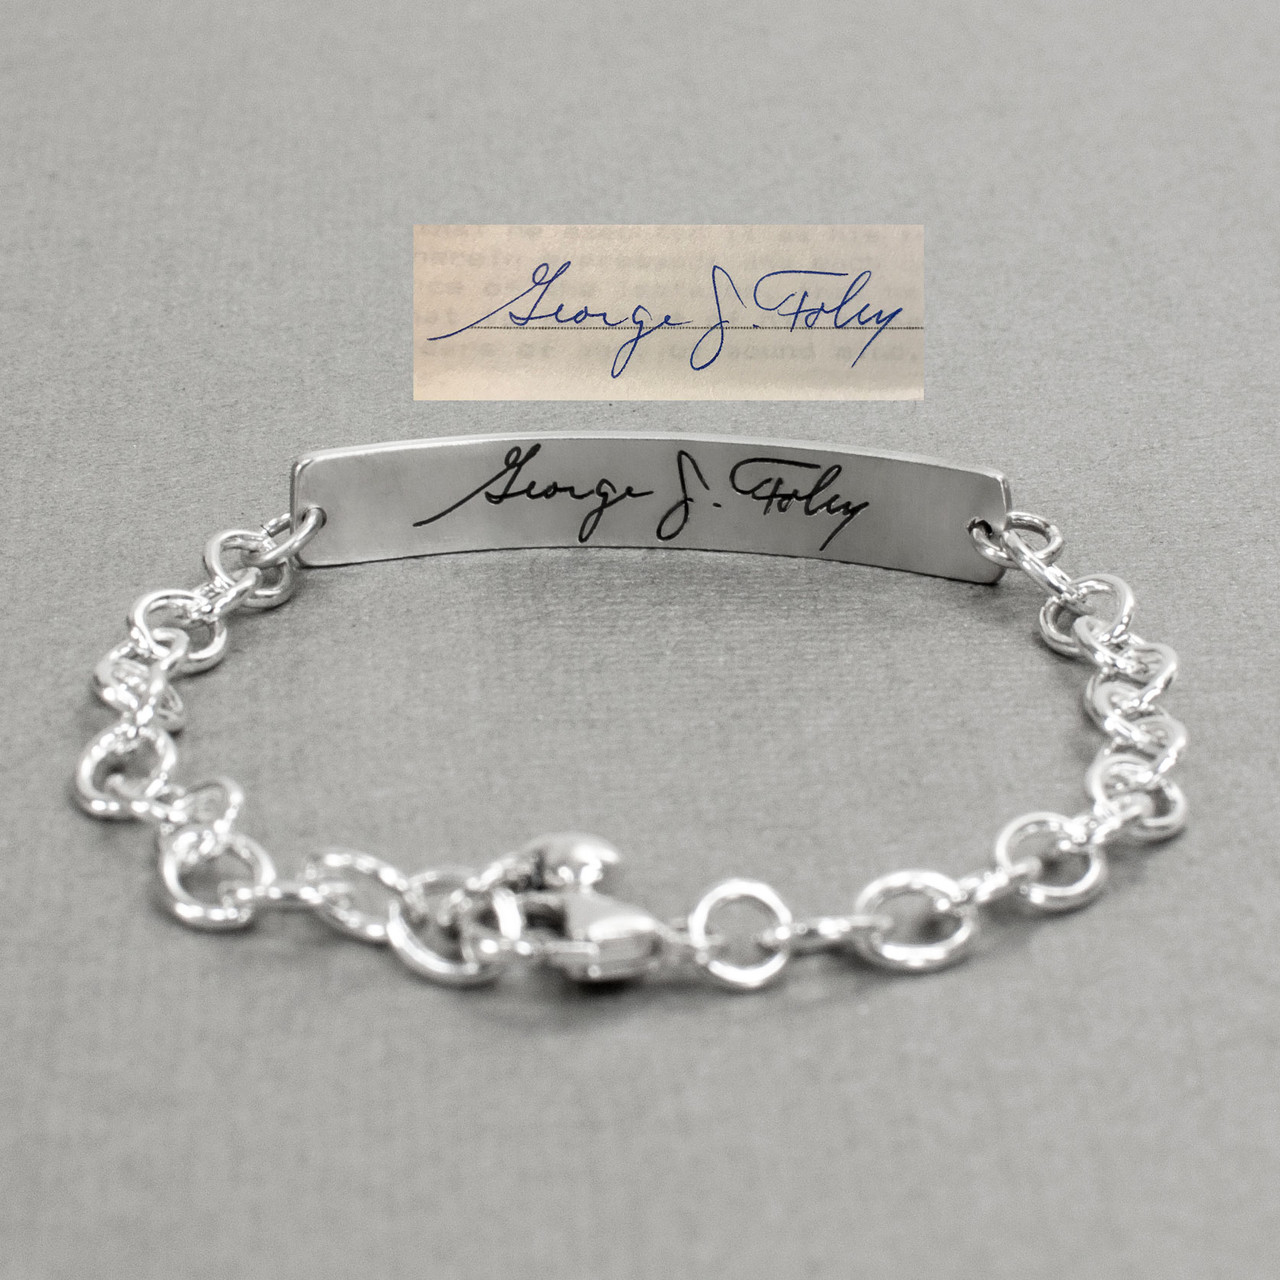 Custom Silver Fingerprint and handwriting ID Bracelet, shown from the back with original handwriting